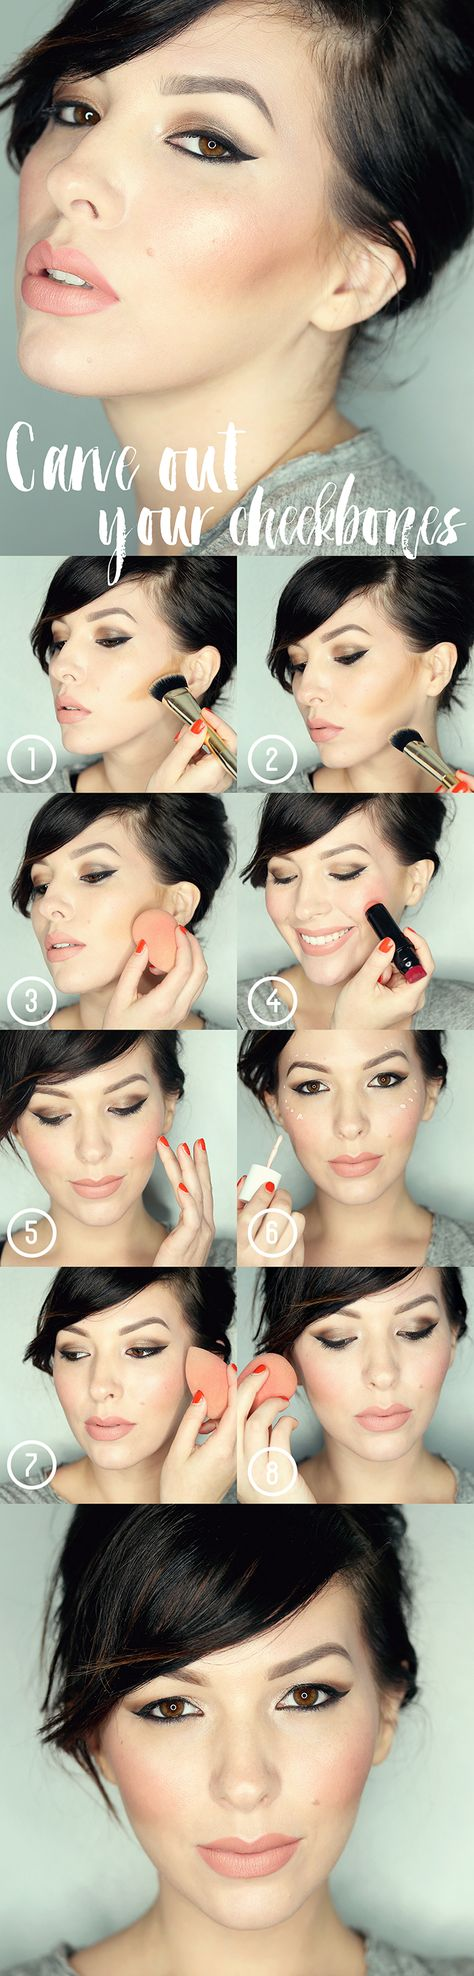 Makeup Monday Tutorial: How To Carve Out Your Cheekbones